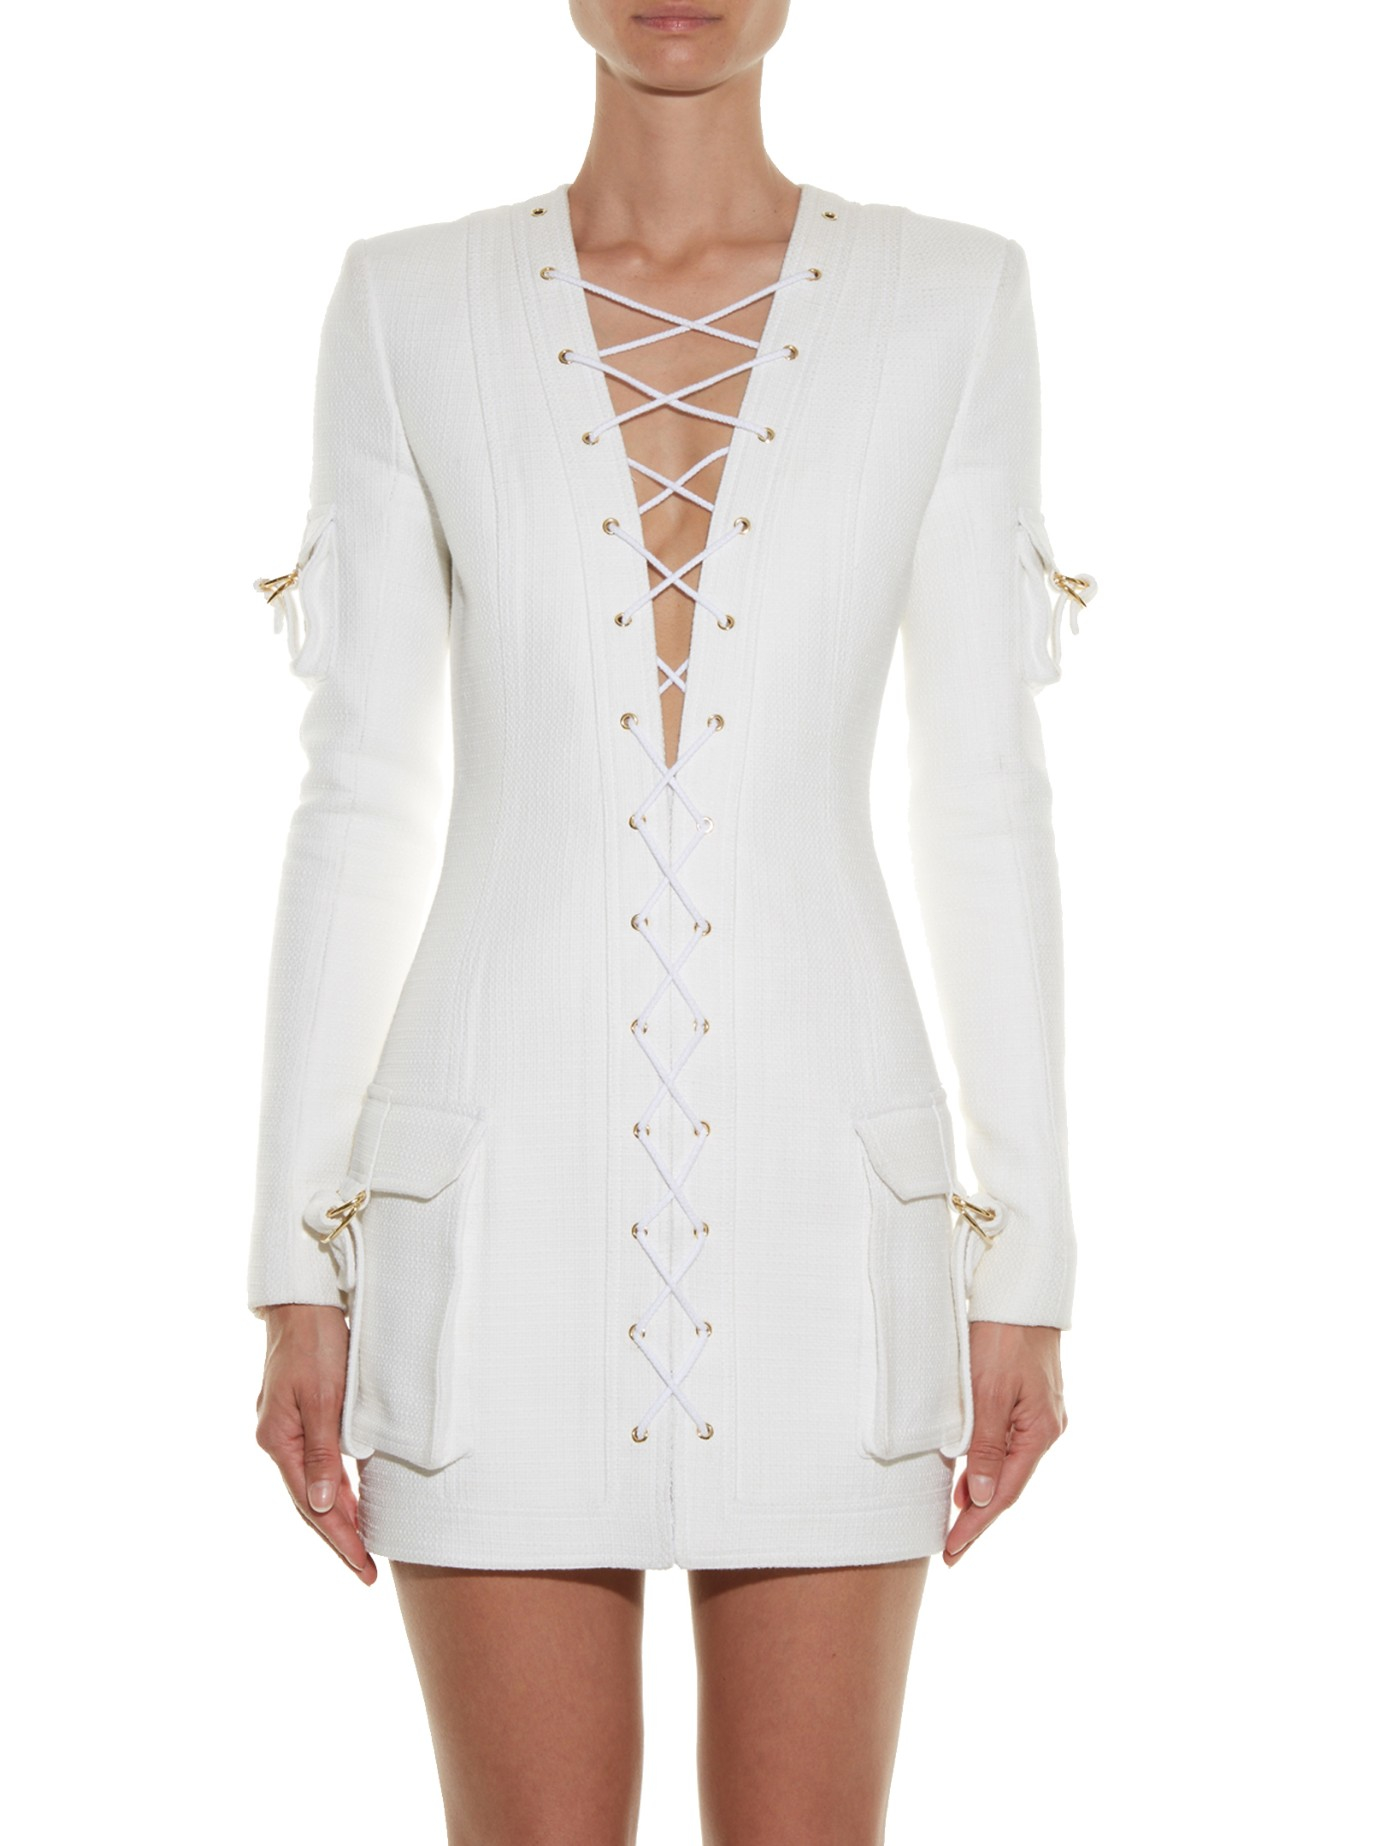 Find great deals on eBay for balmain white. Shop with confidence.